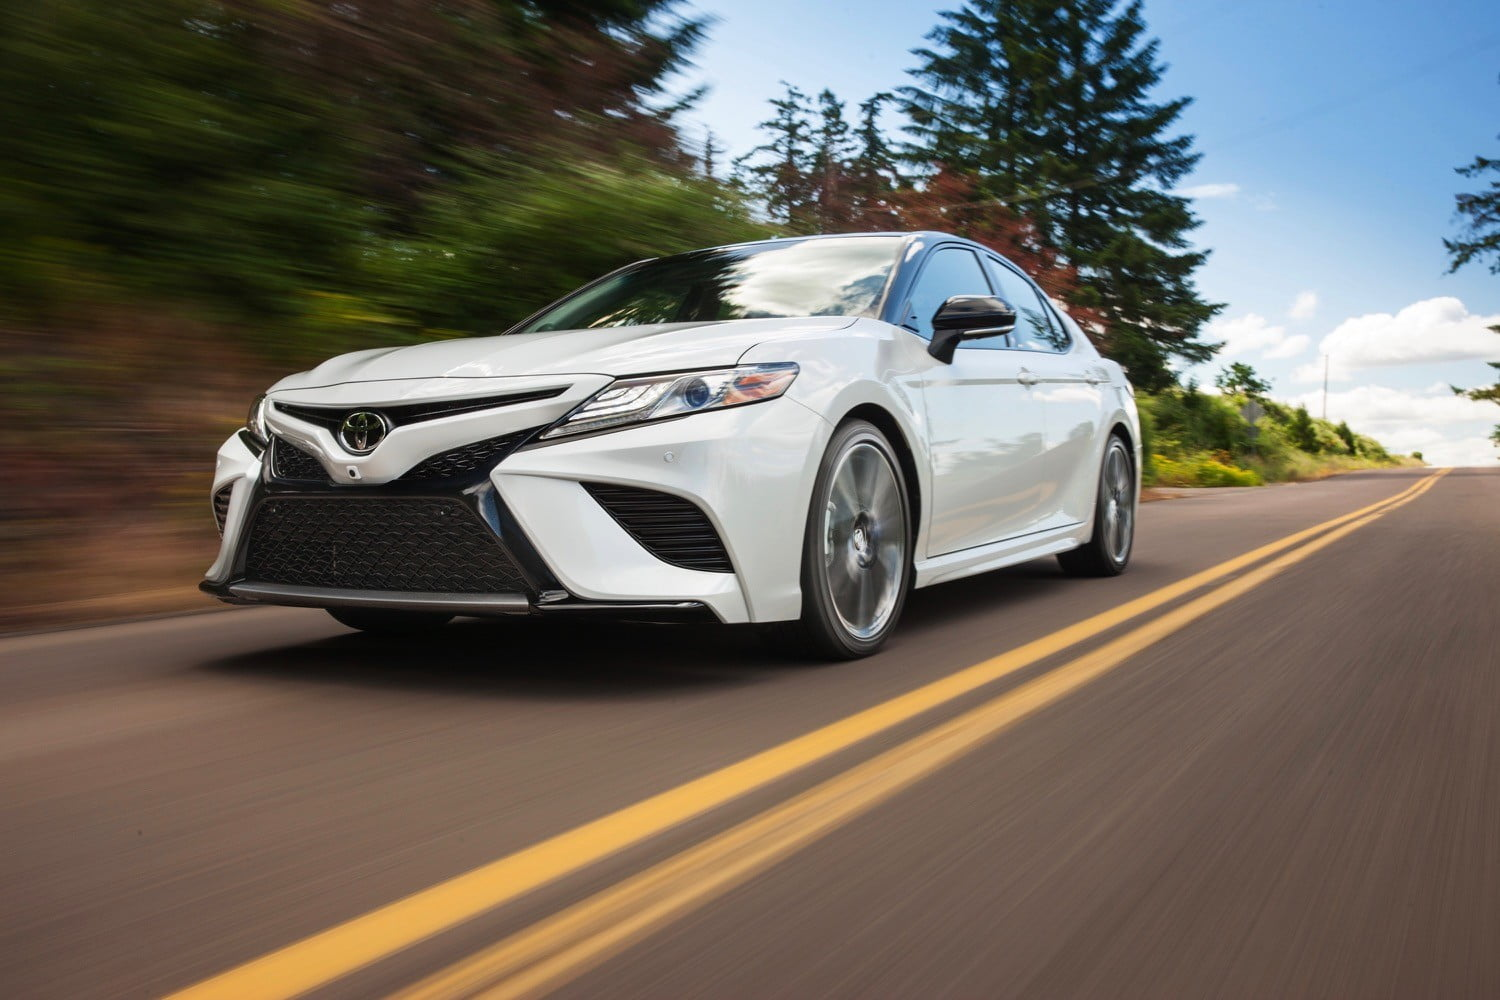 camry vs. corolla | pricing, features, and performance compared